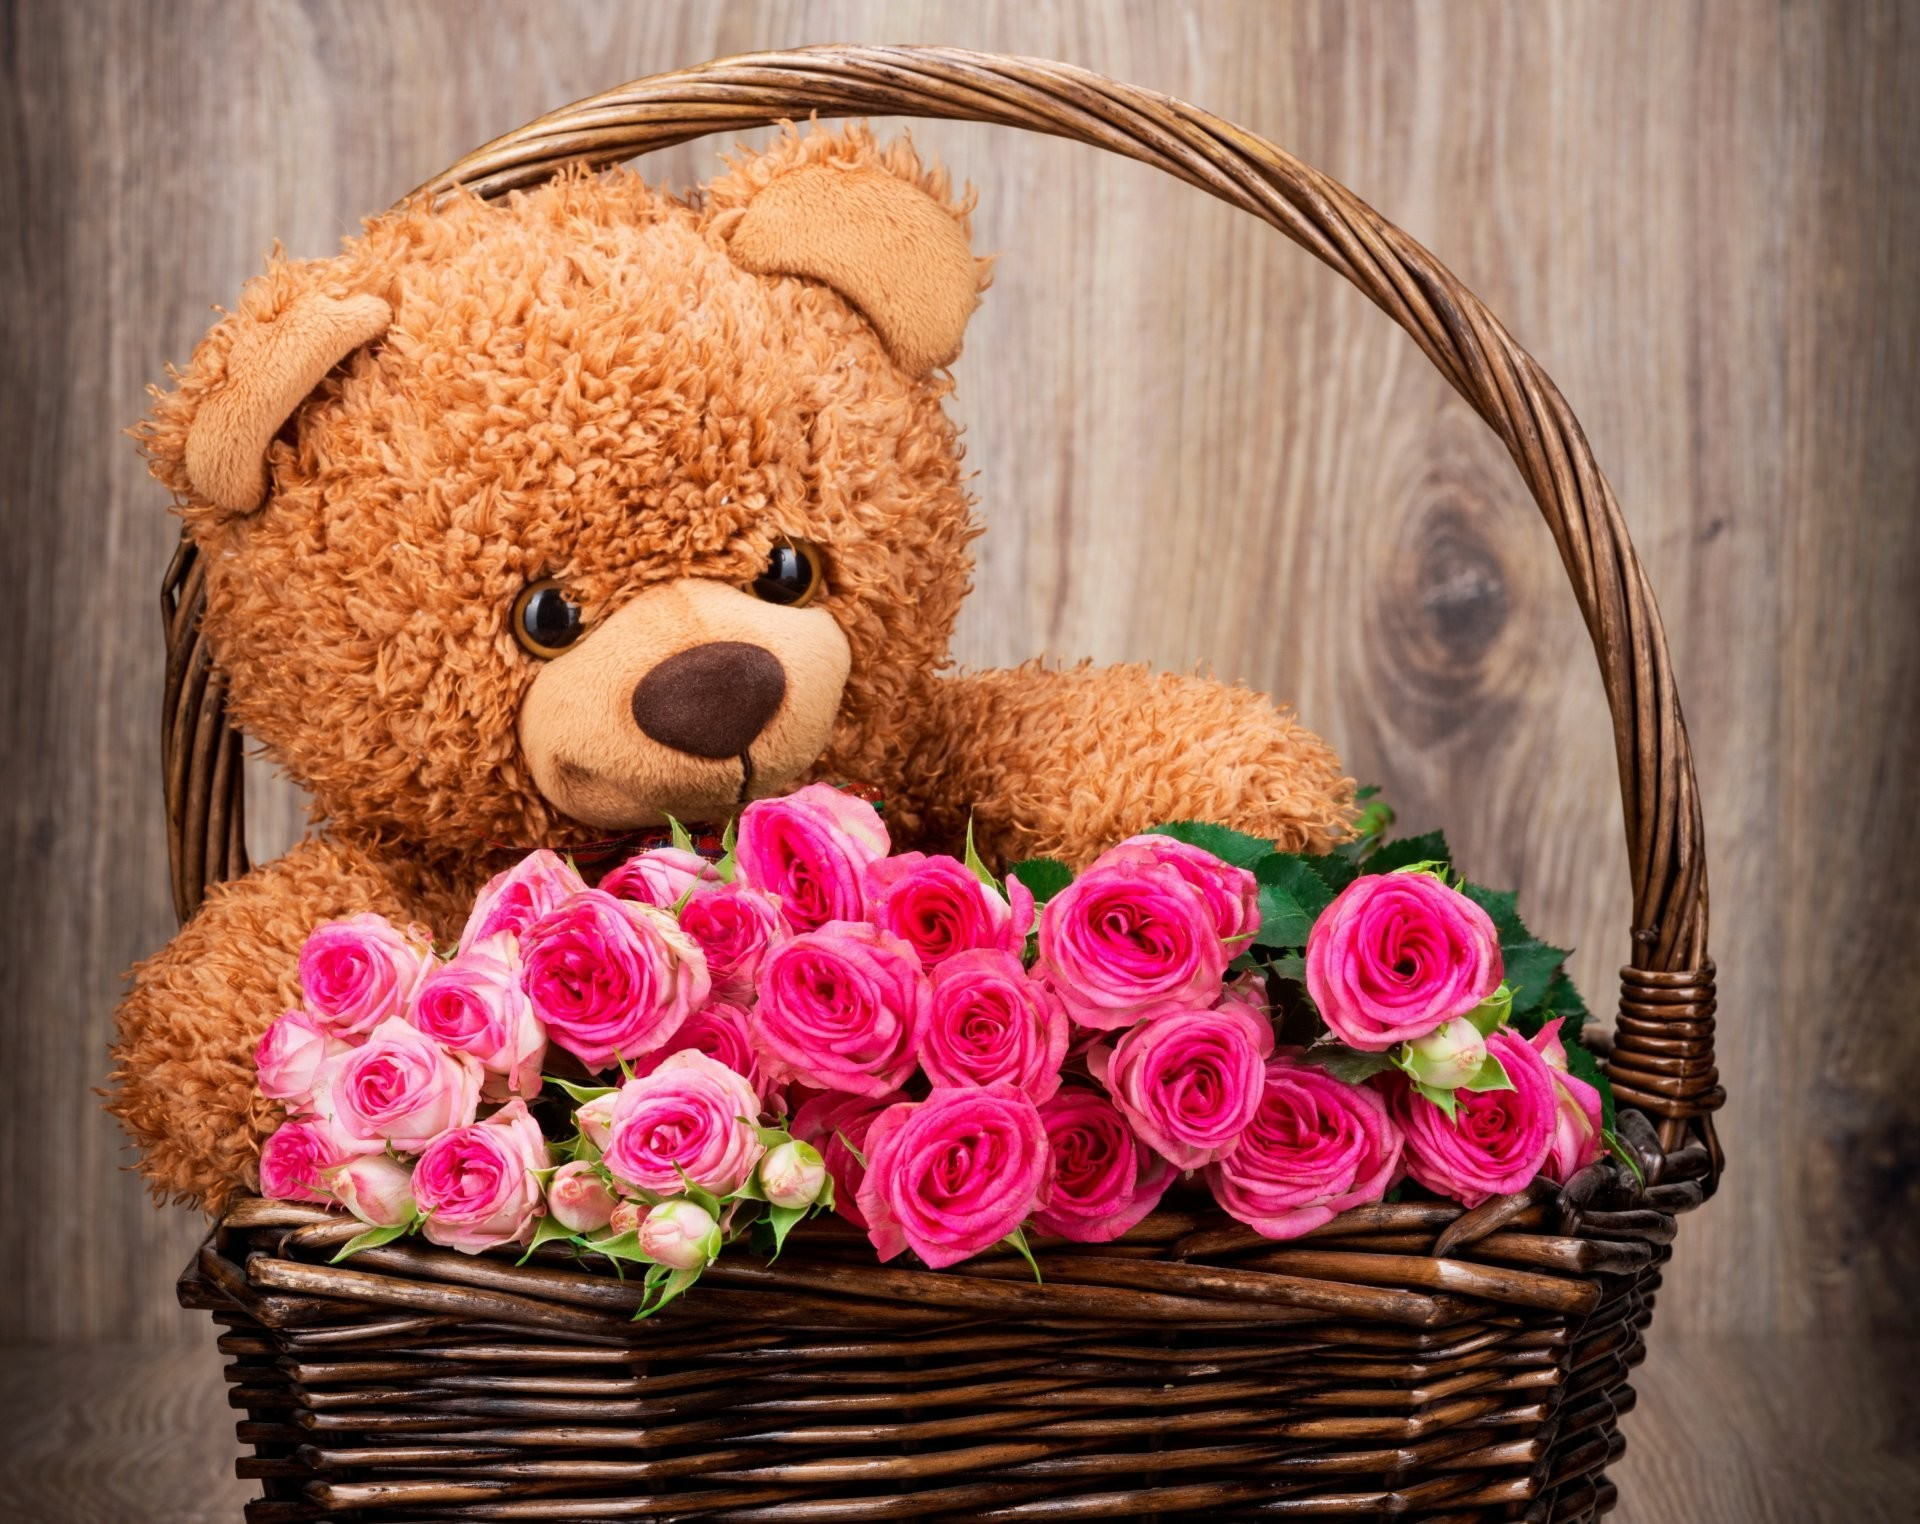 Cute Teddy Bear Wallpaper 50 Images